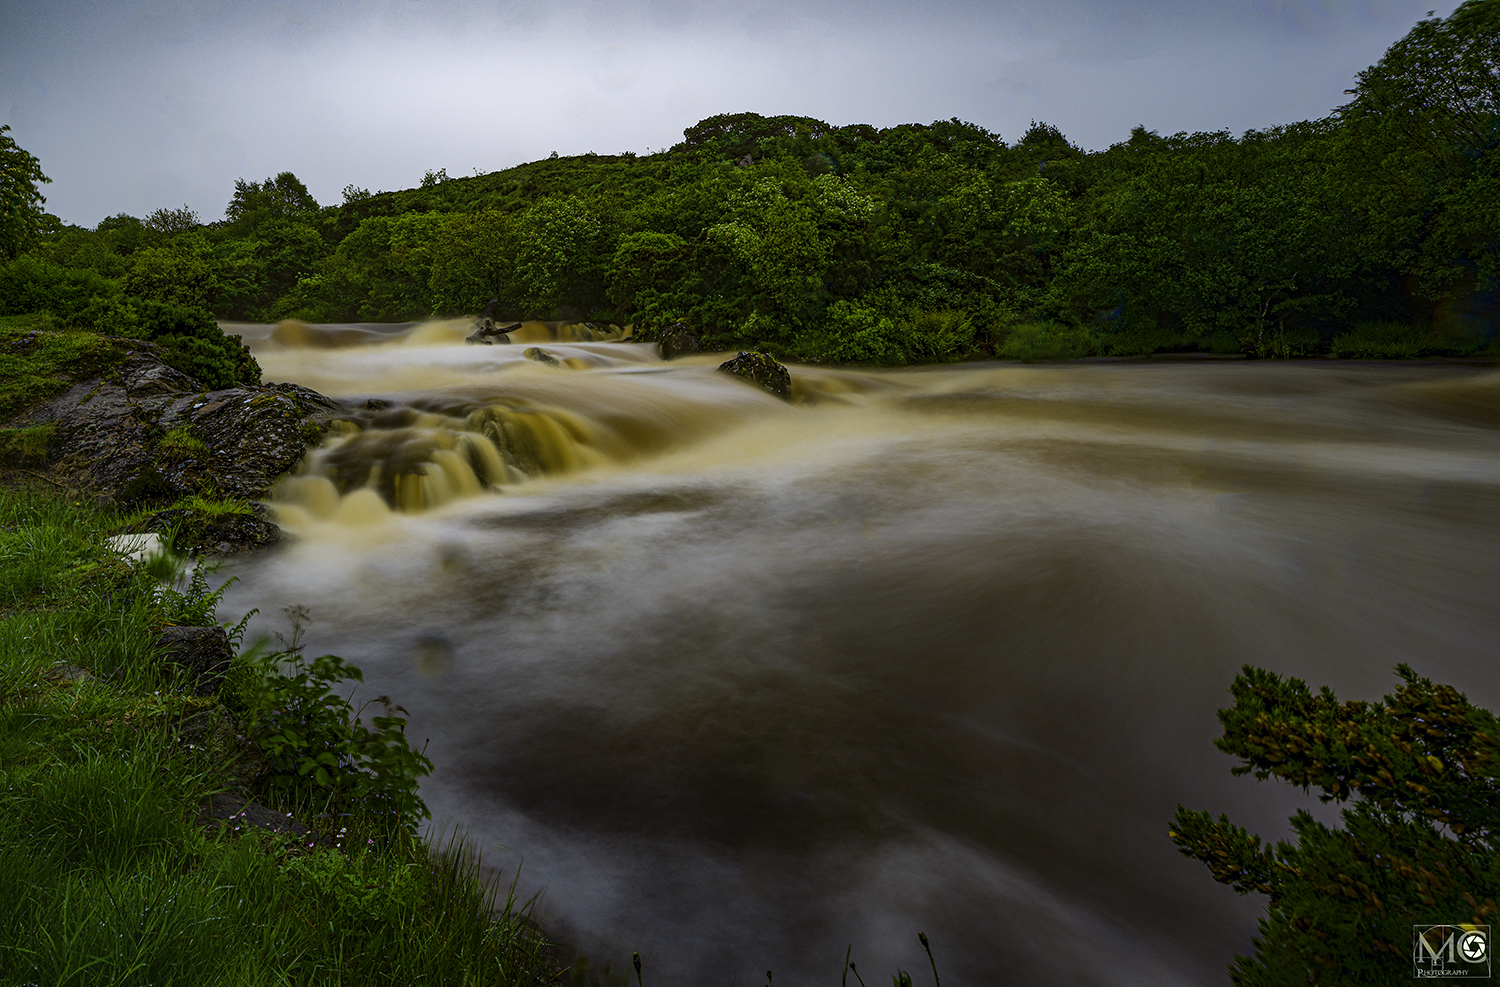 River torrent after the rain near Kilcar, Co. Donegal, Ireland